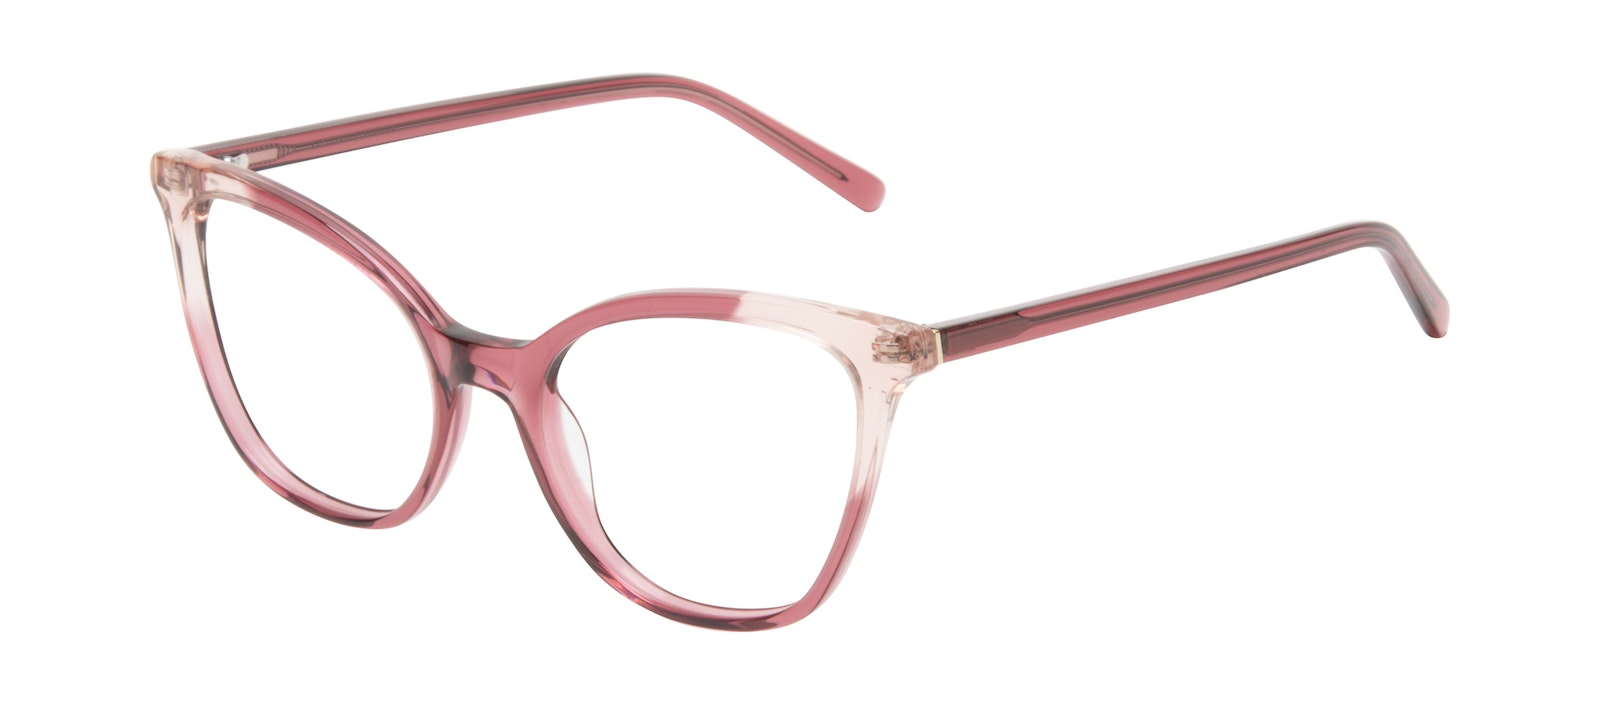 Affordable Fashion Glasses Cat Eye Eyeglasses Women Tippi Orchid Pink Tilt